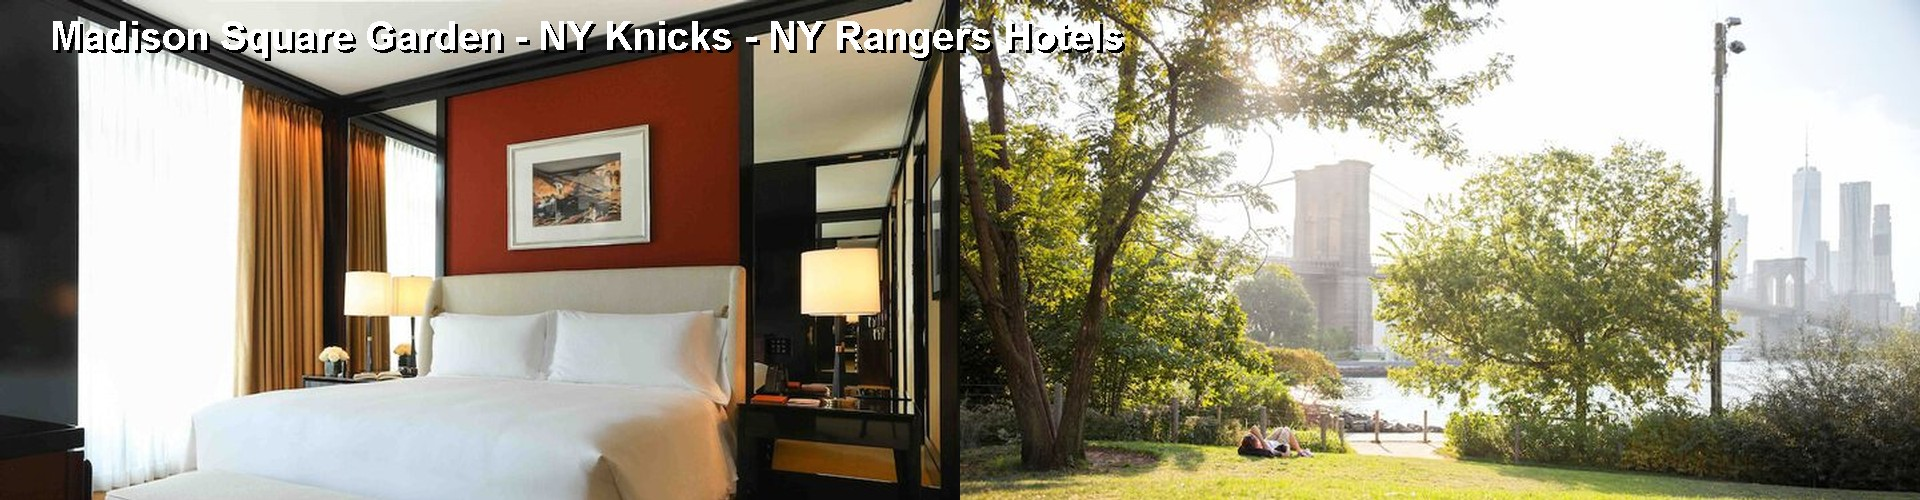 Hotels Near Madison Square Garden NY Knicks NY Rangers in